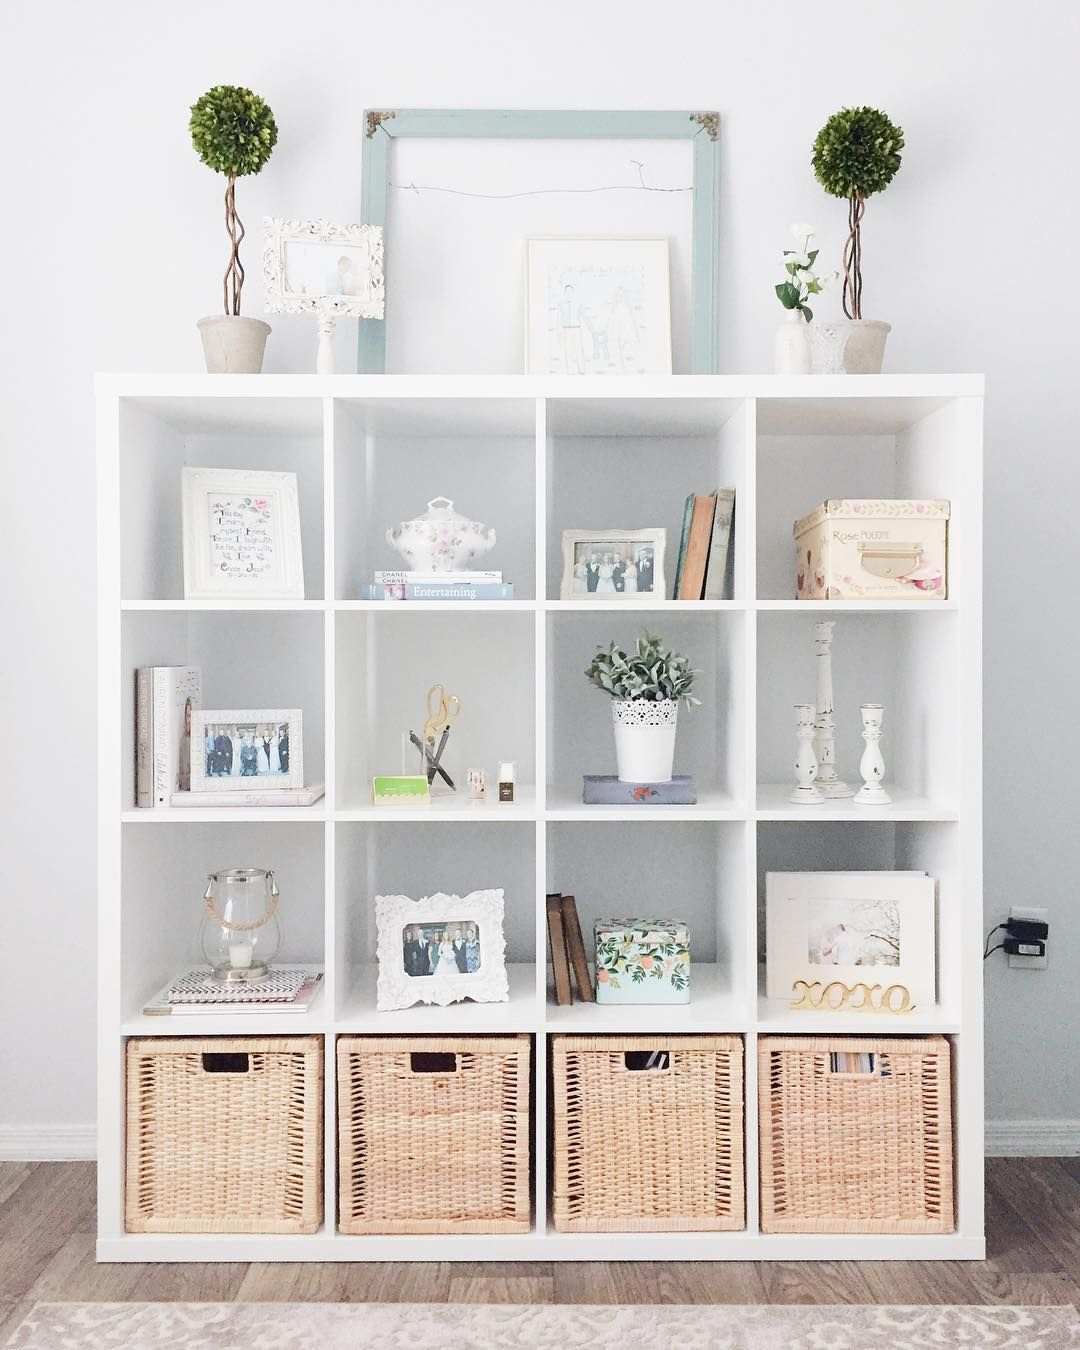 Ikea Shelves Perth I Ve Been Looking For Functional Ways To Decorate My Feminine Home